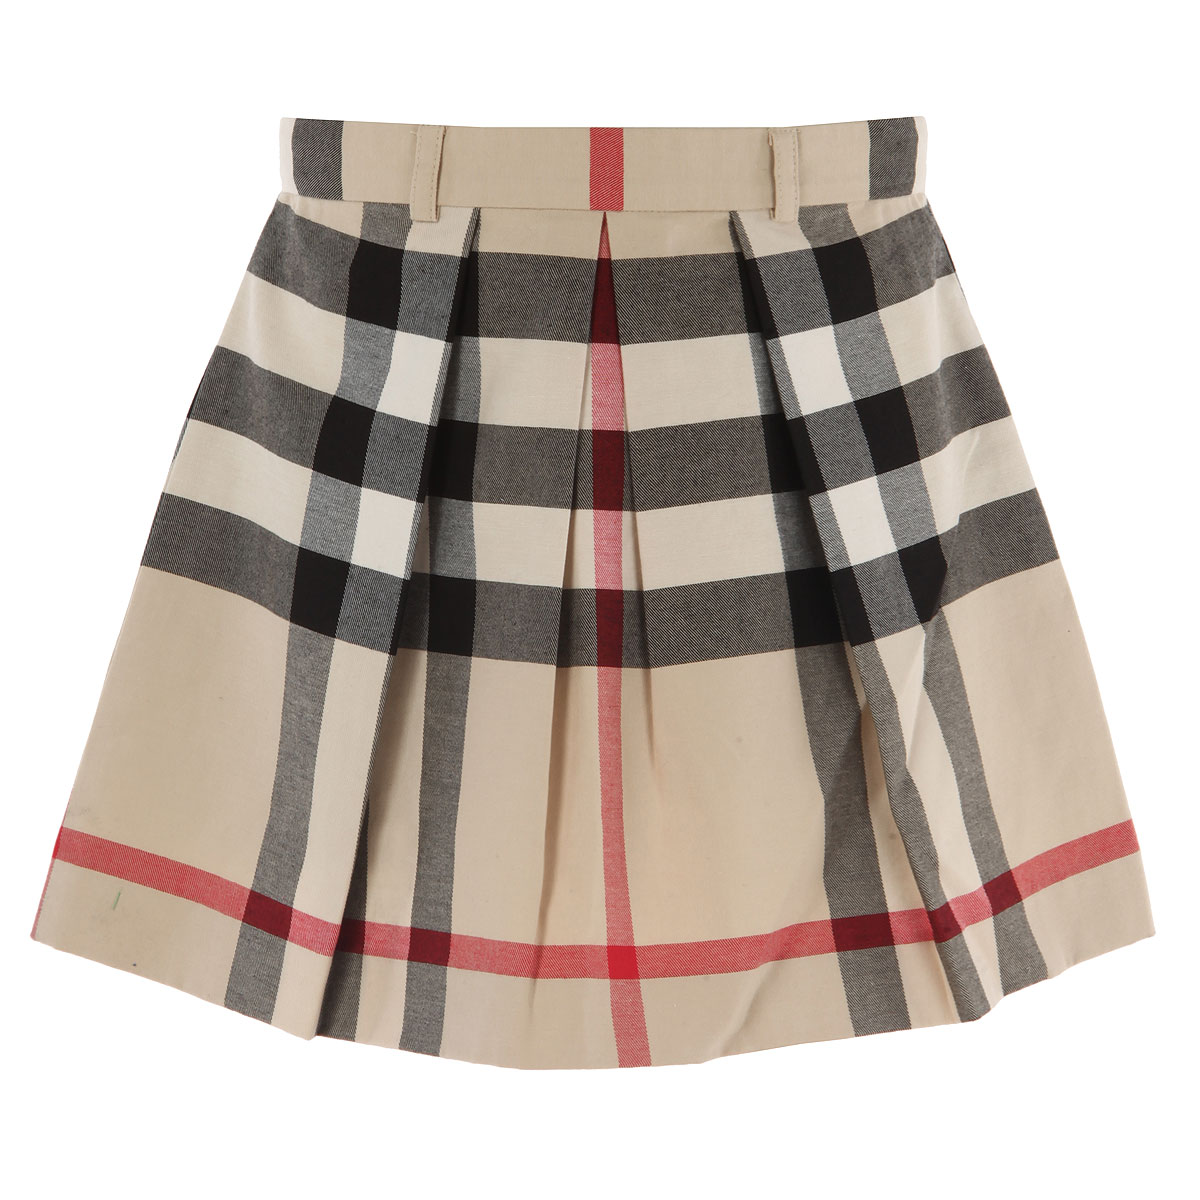 Image of Burberry Kids Skirts for Girls, Beige, Cotton, 2017, 4Y 6Y 8Y